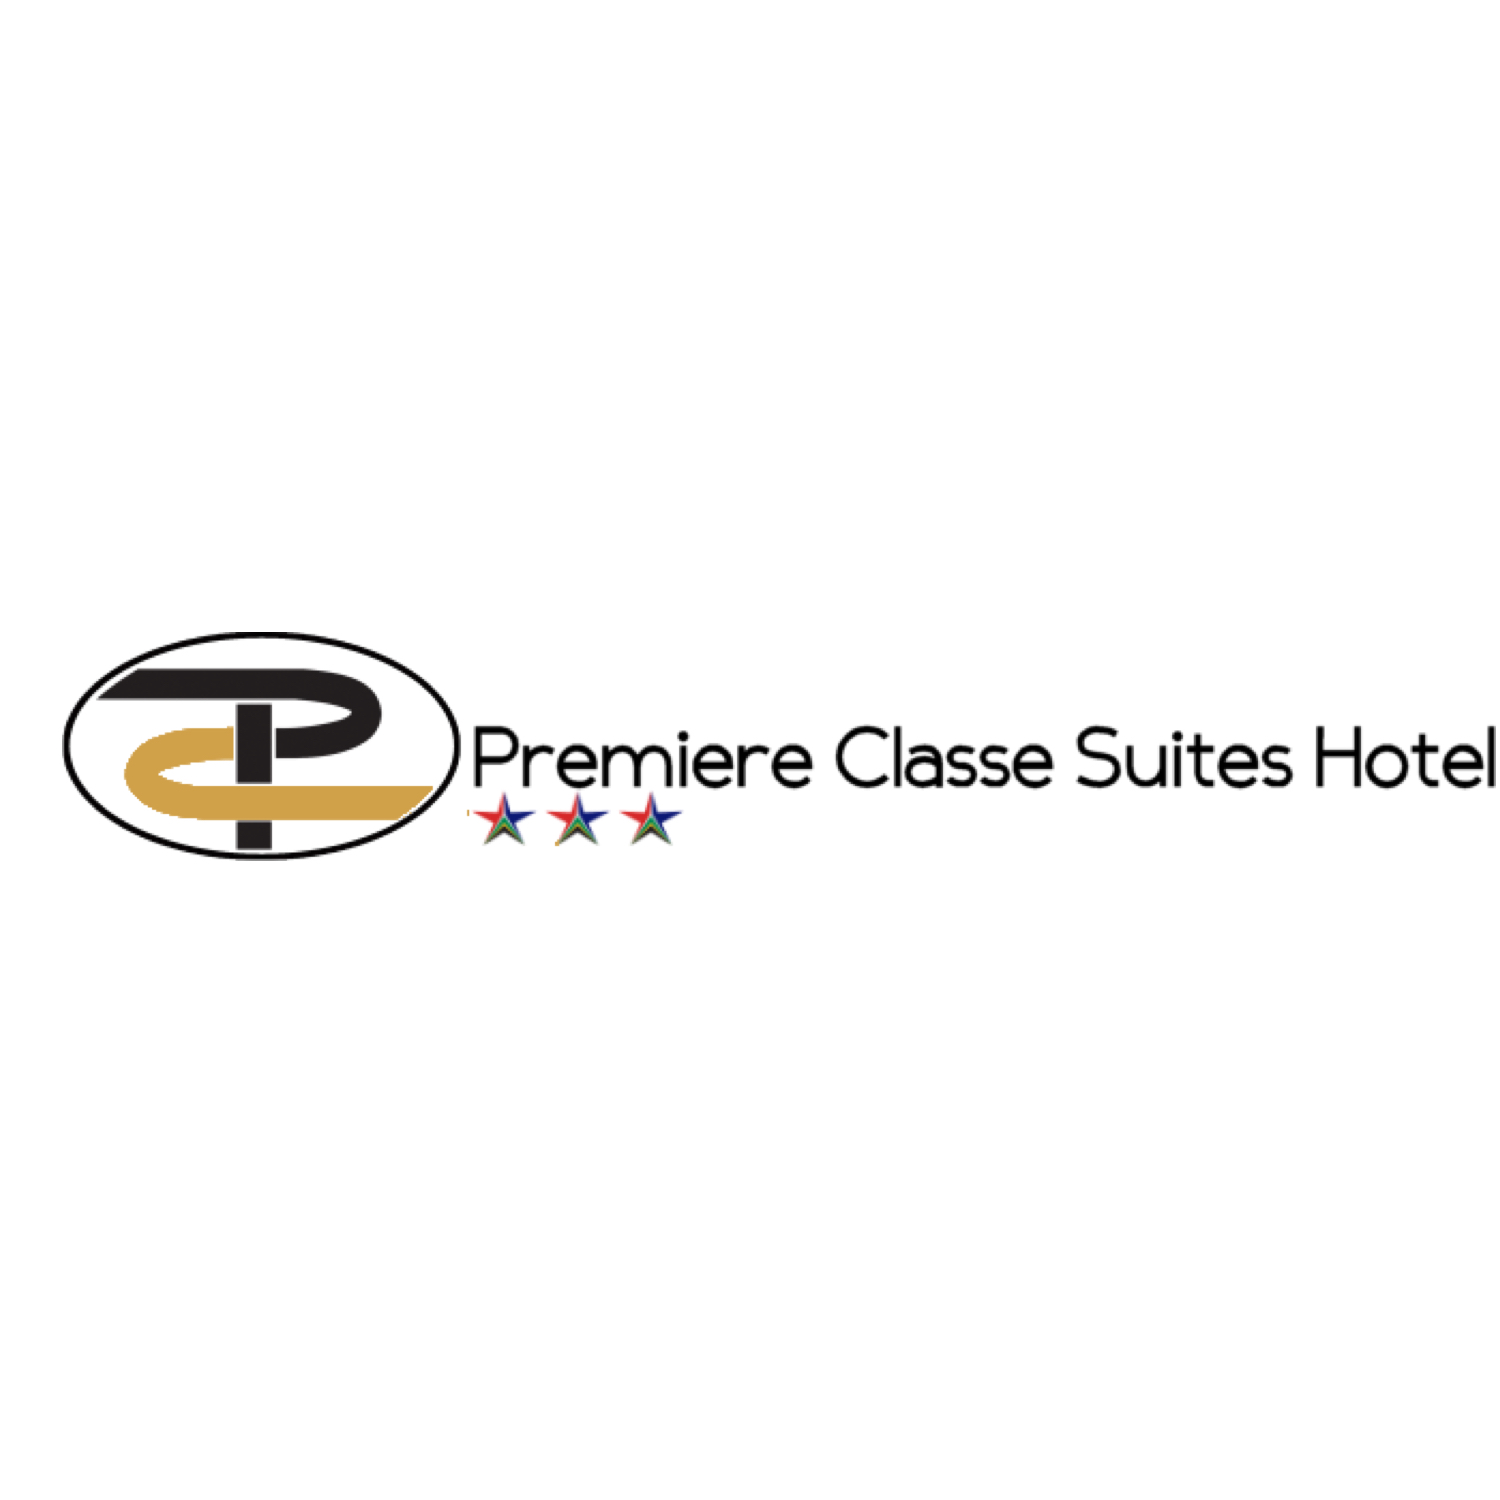 Premiere Classe Suites Hotel - South Africa